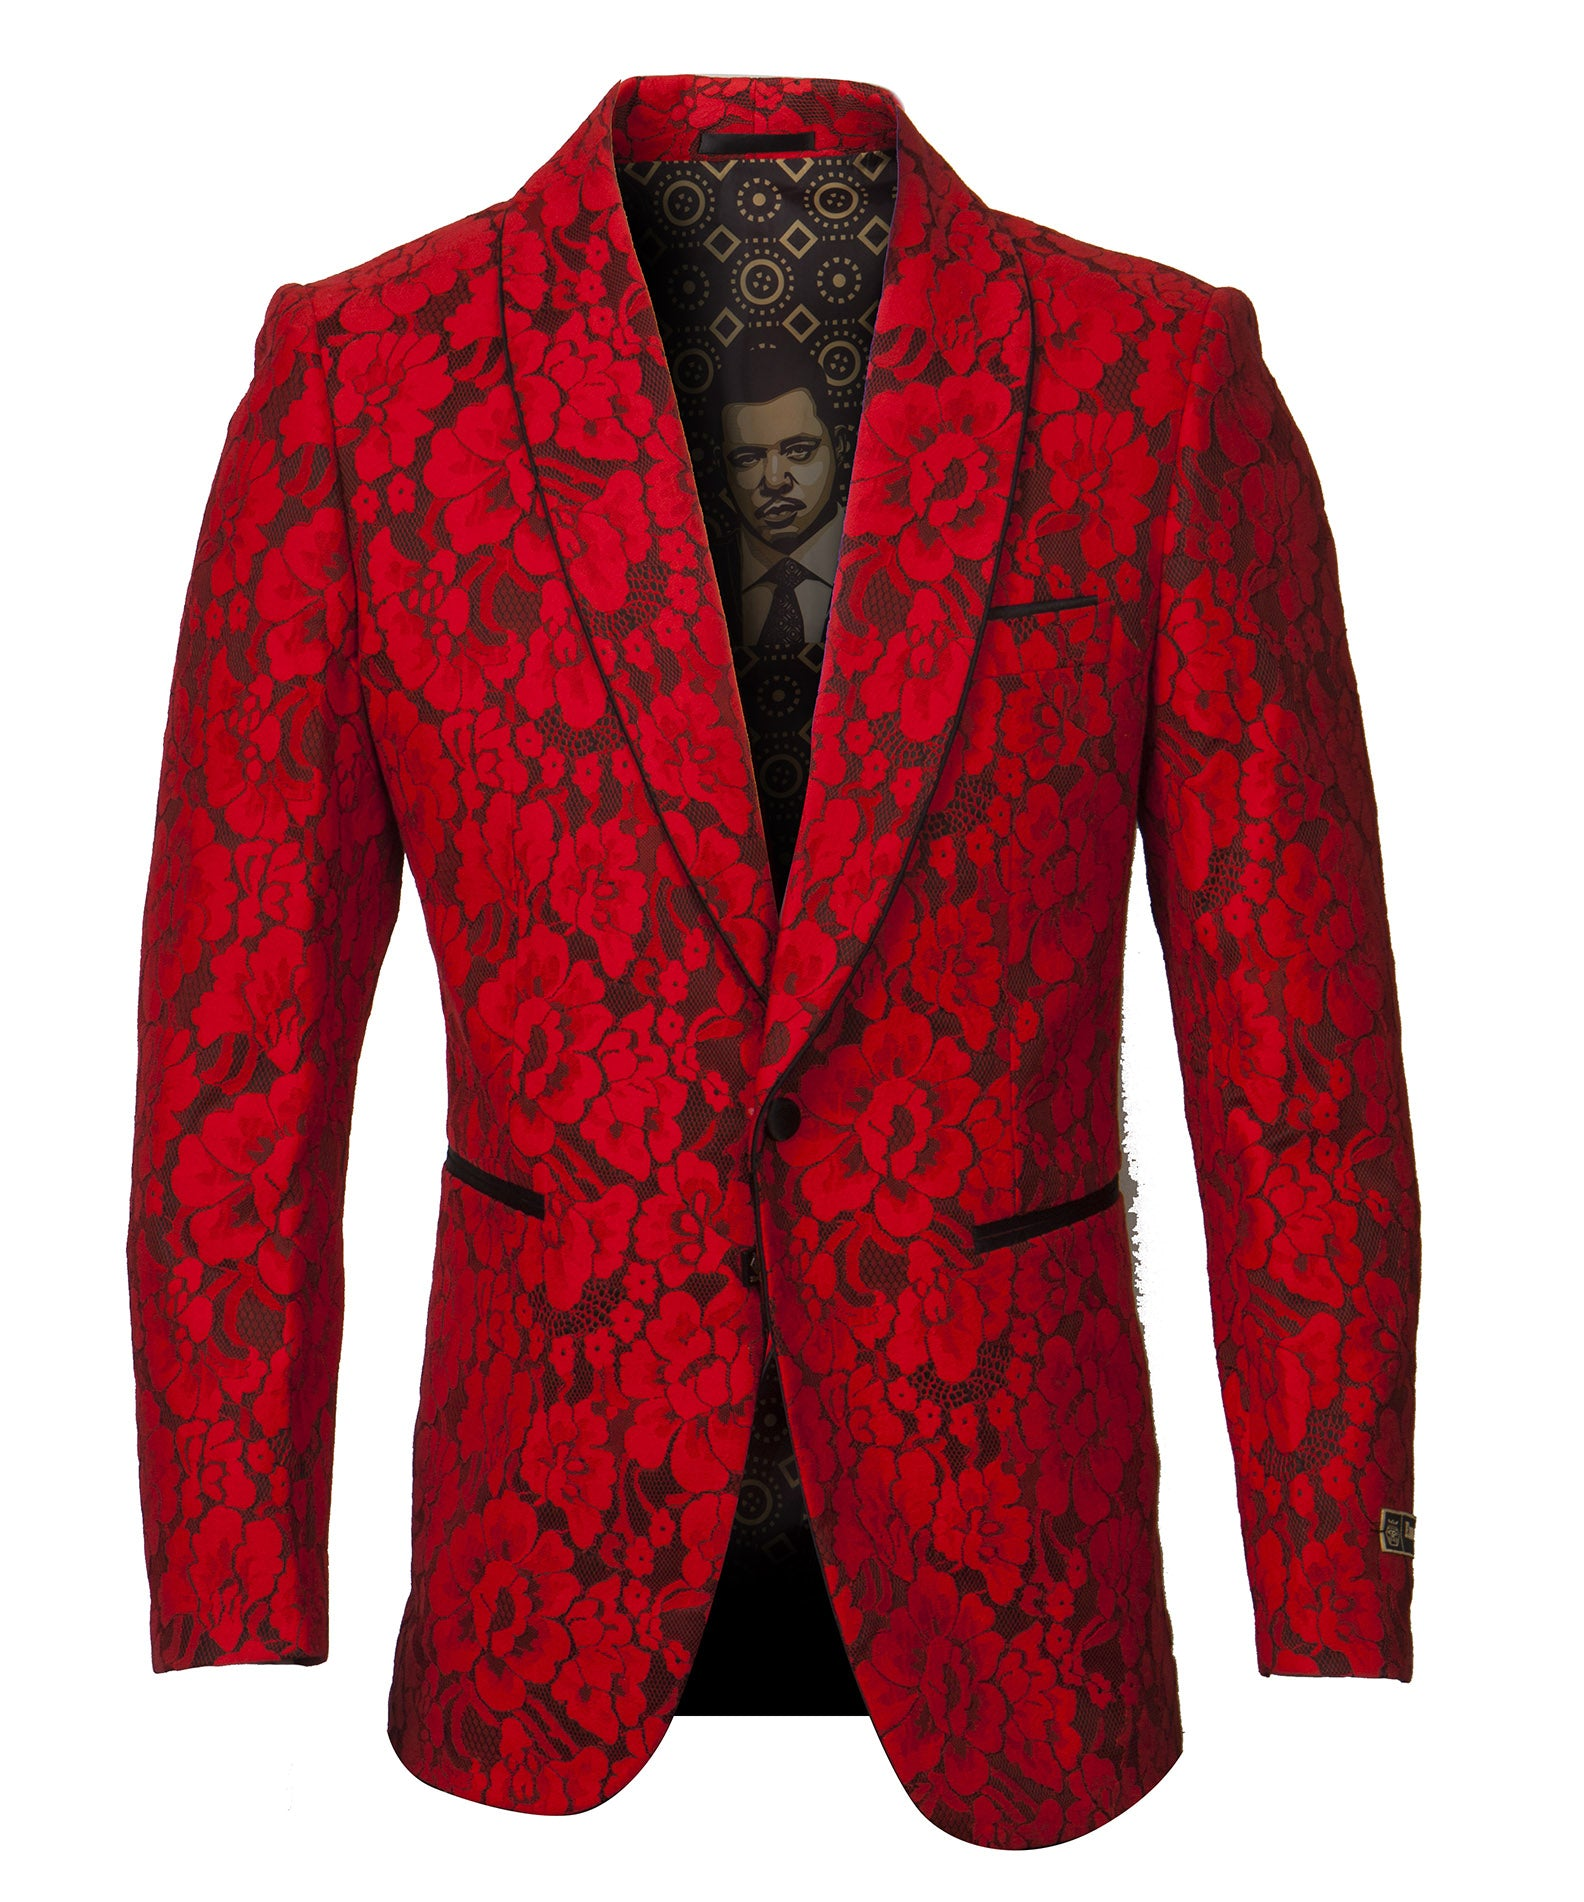 Red Empire Show Blazers Formal Dinner Suit Jackets For Men ME277H-02